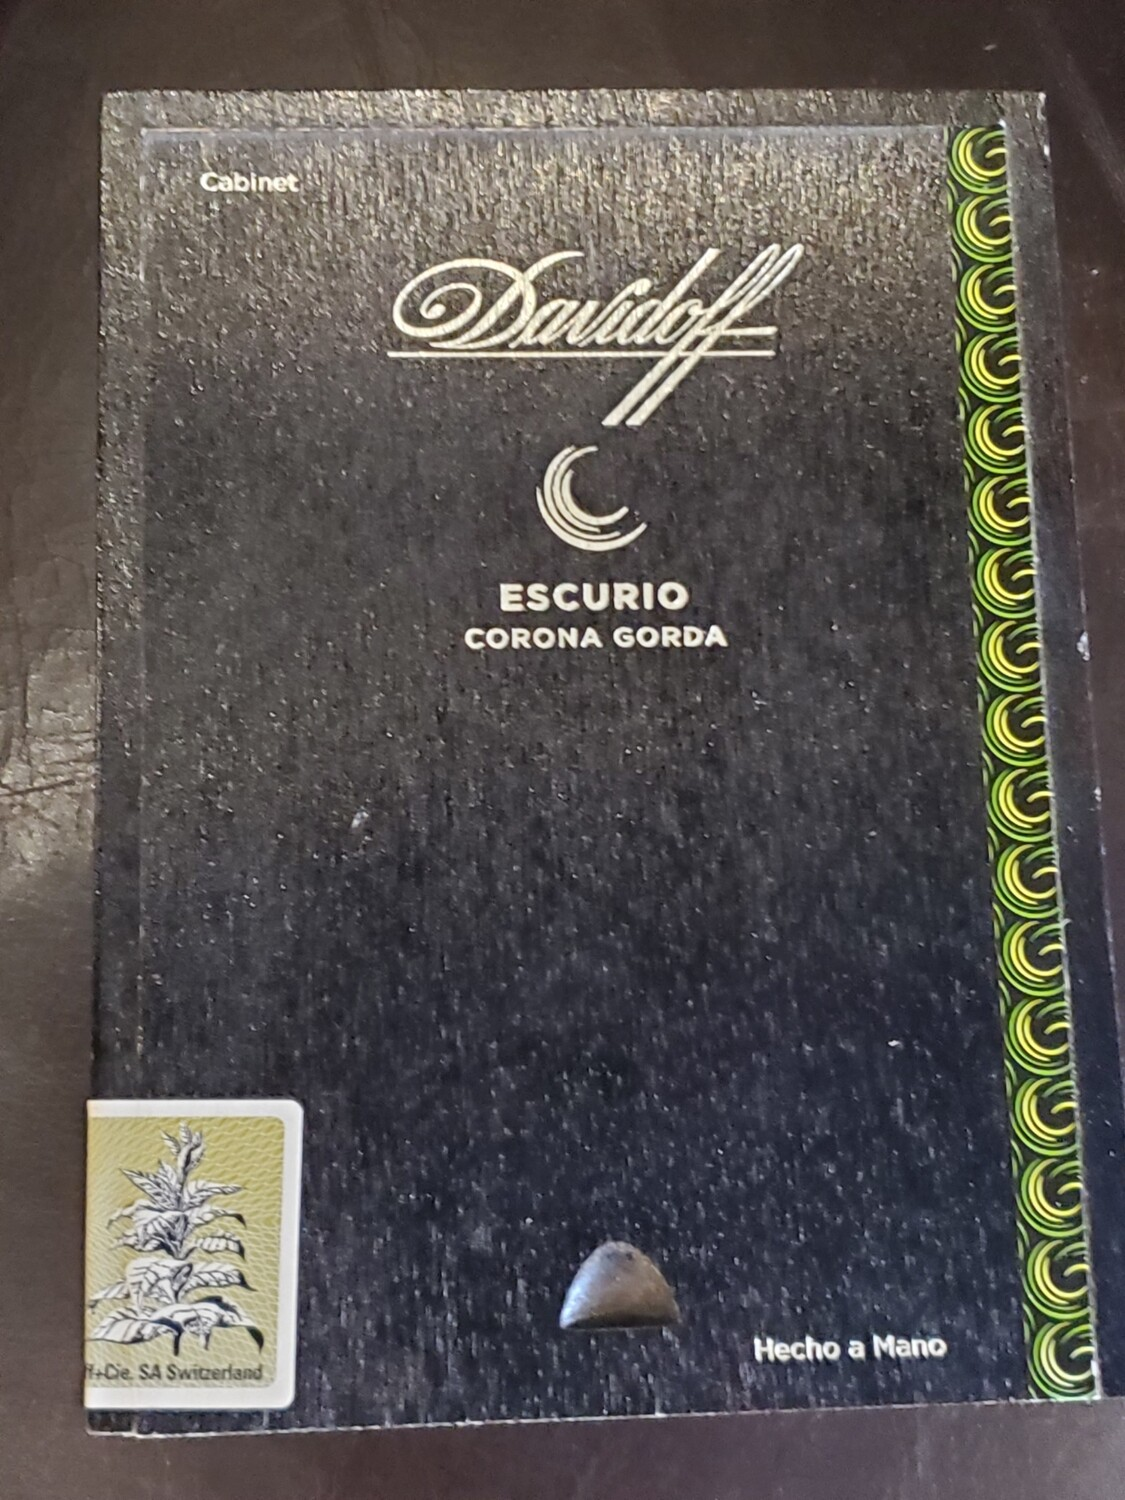 Davidoff Escurio Corona Gorda - Box 12